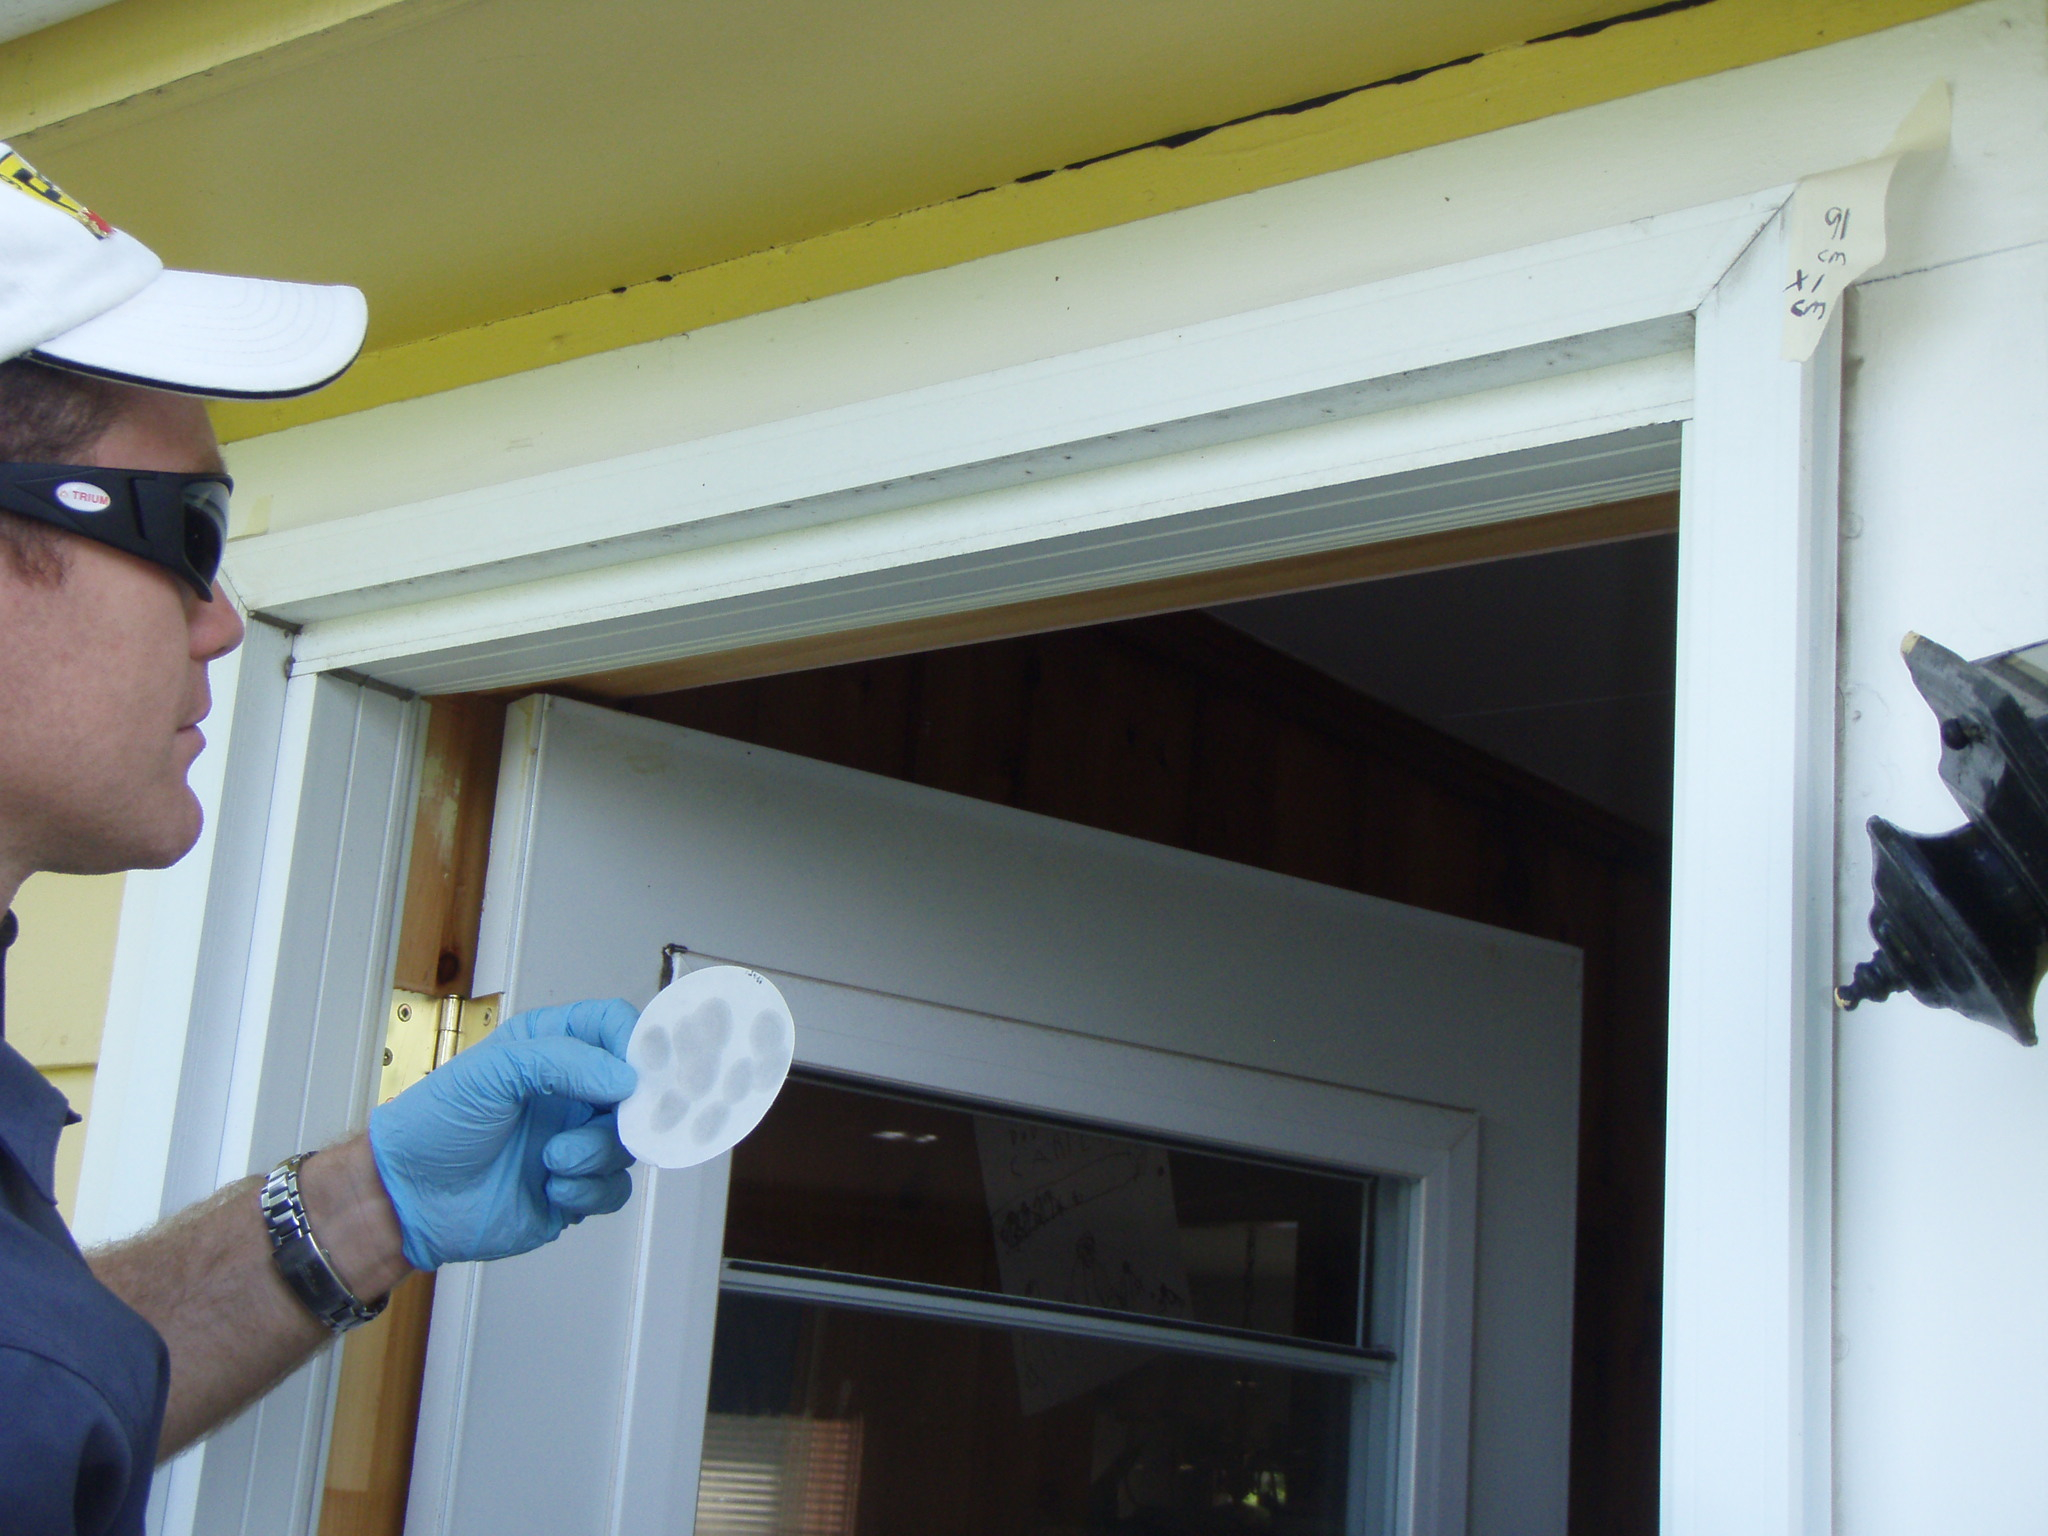 residential dust-wipe for legal sampling to determine contamination